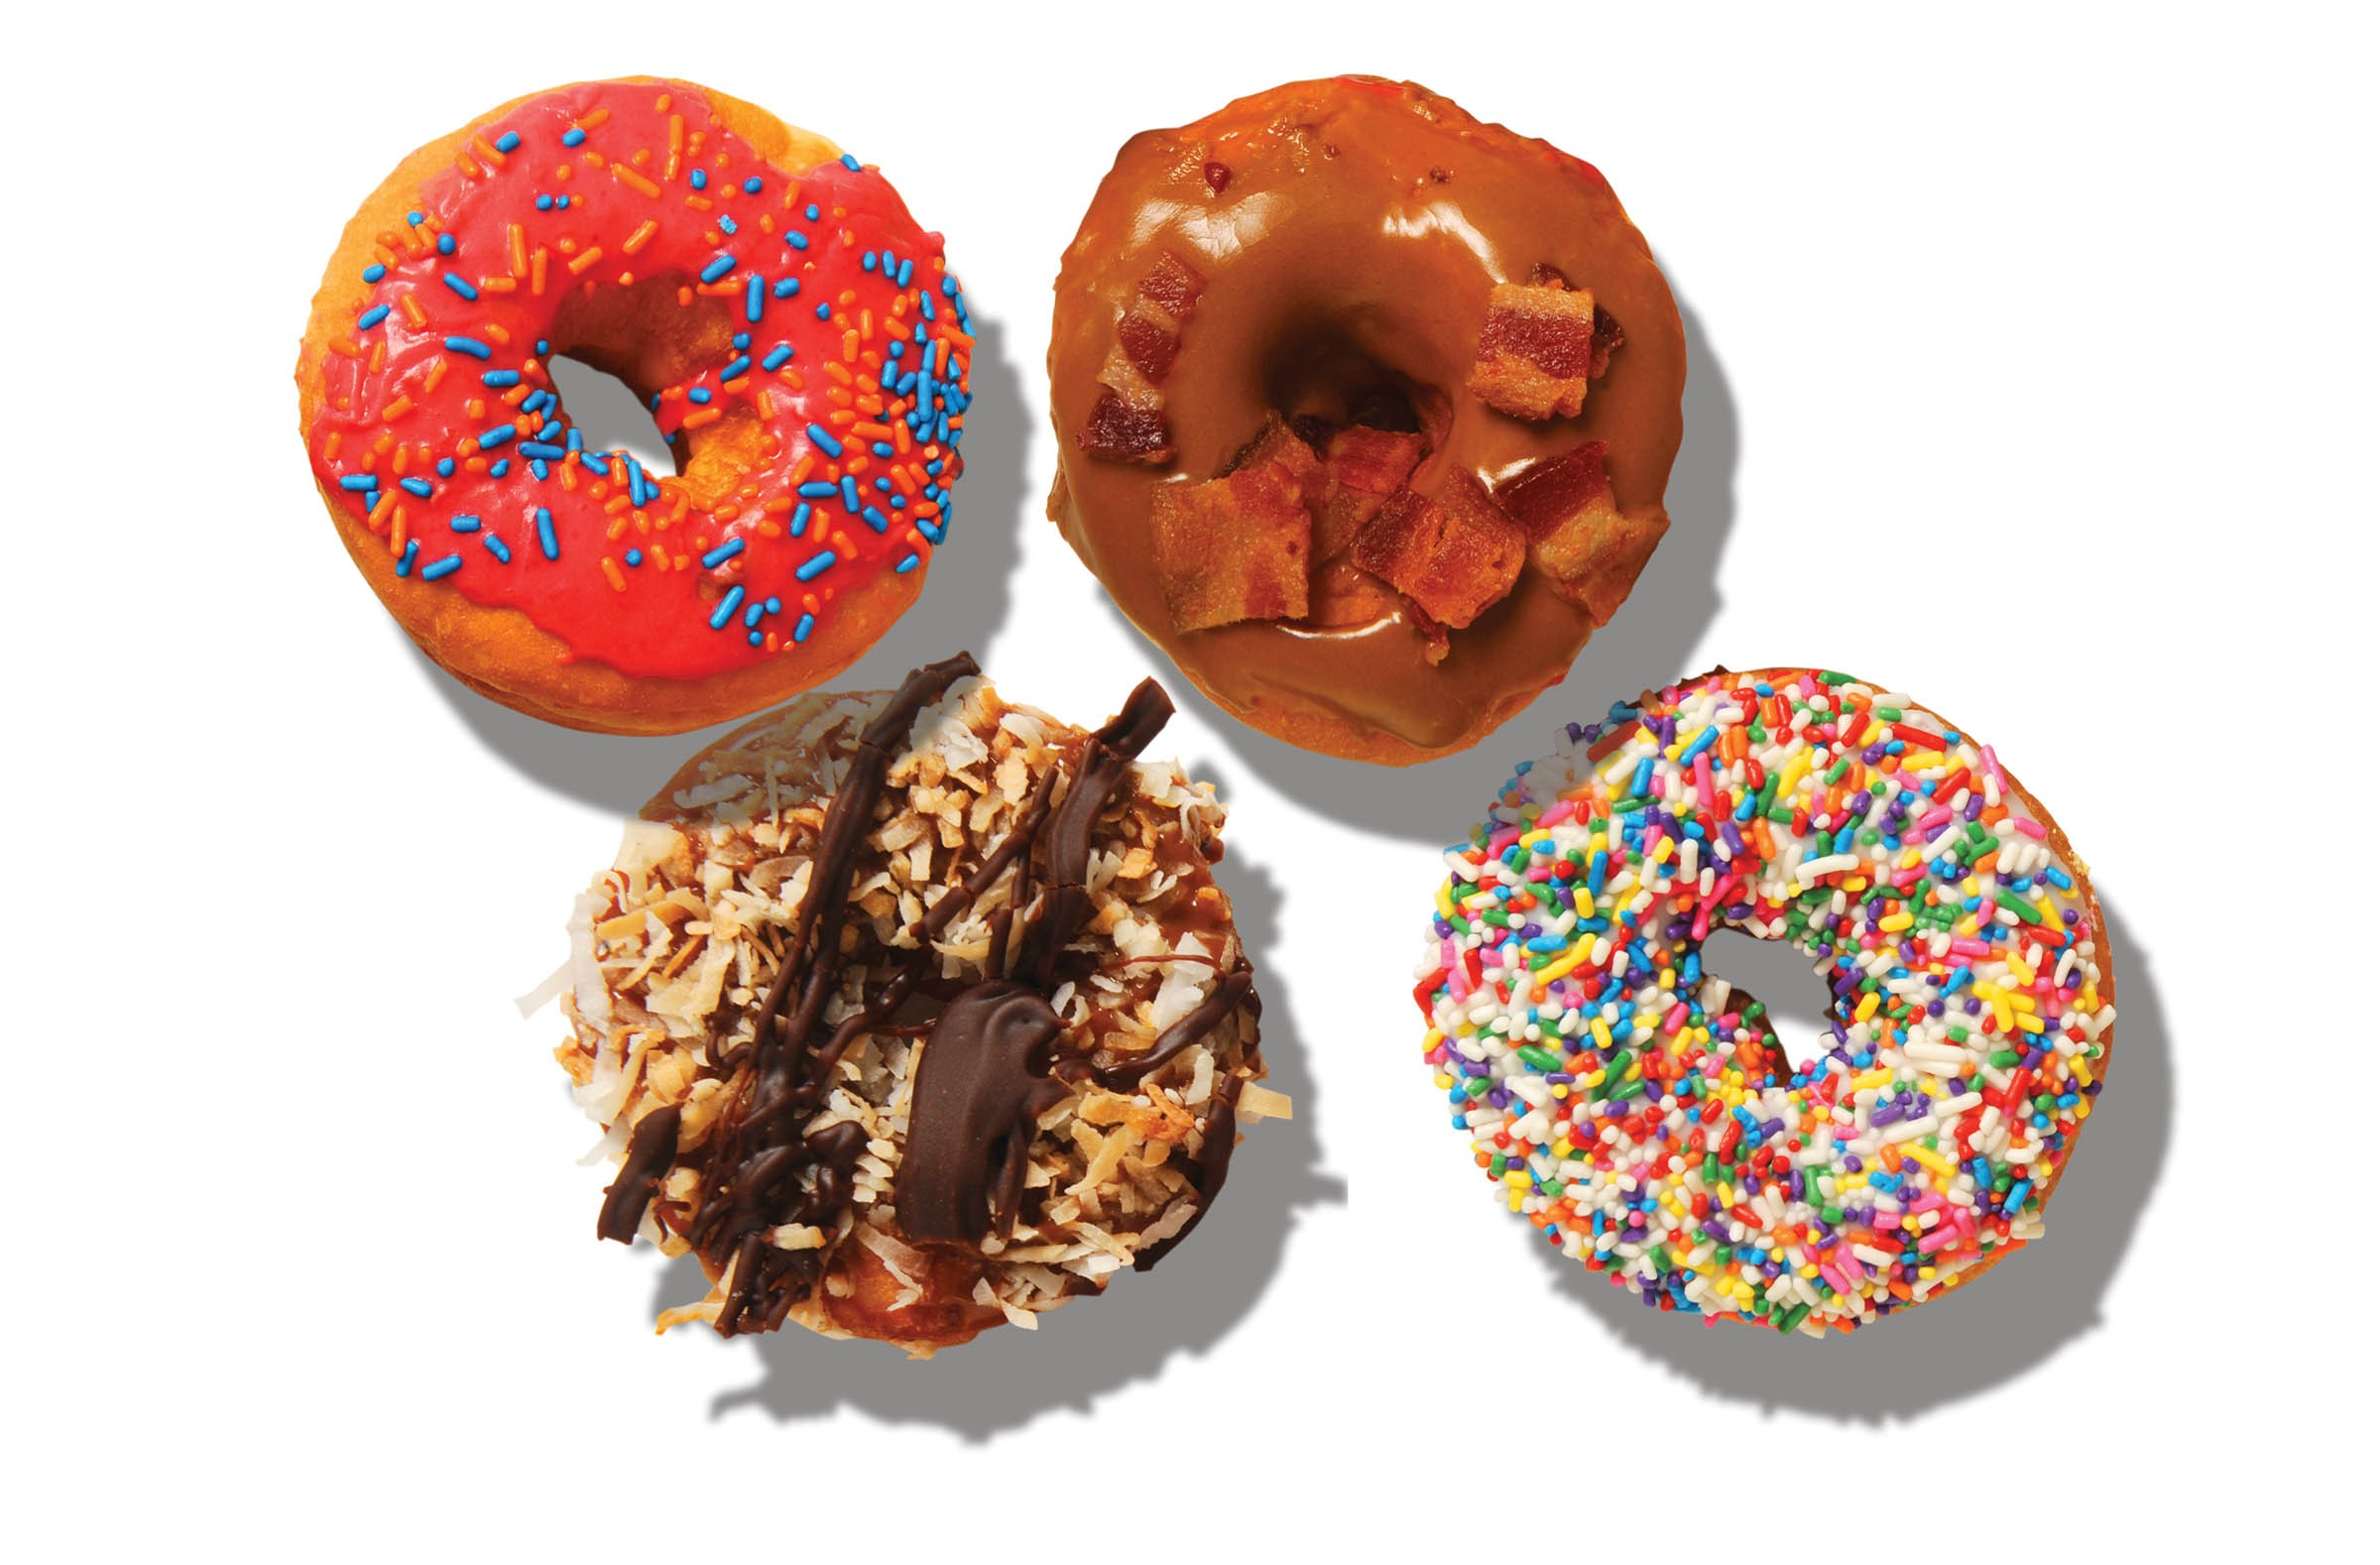 Sugar Shack Donuts makes the raspberry with sprinkles and maple with bacon yeast doughnuts in its new space in Carver. Dixie Donuts does a cake-style tribute to the samoa cookie and a sprinkles version in Carytown, among many other flavors. - SCOTT ELMQUIST